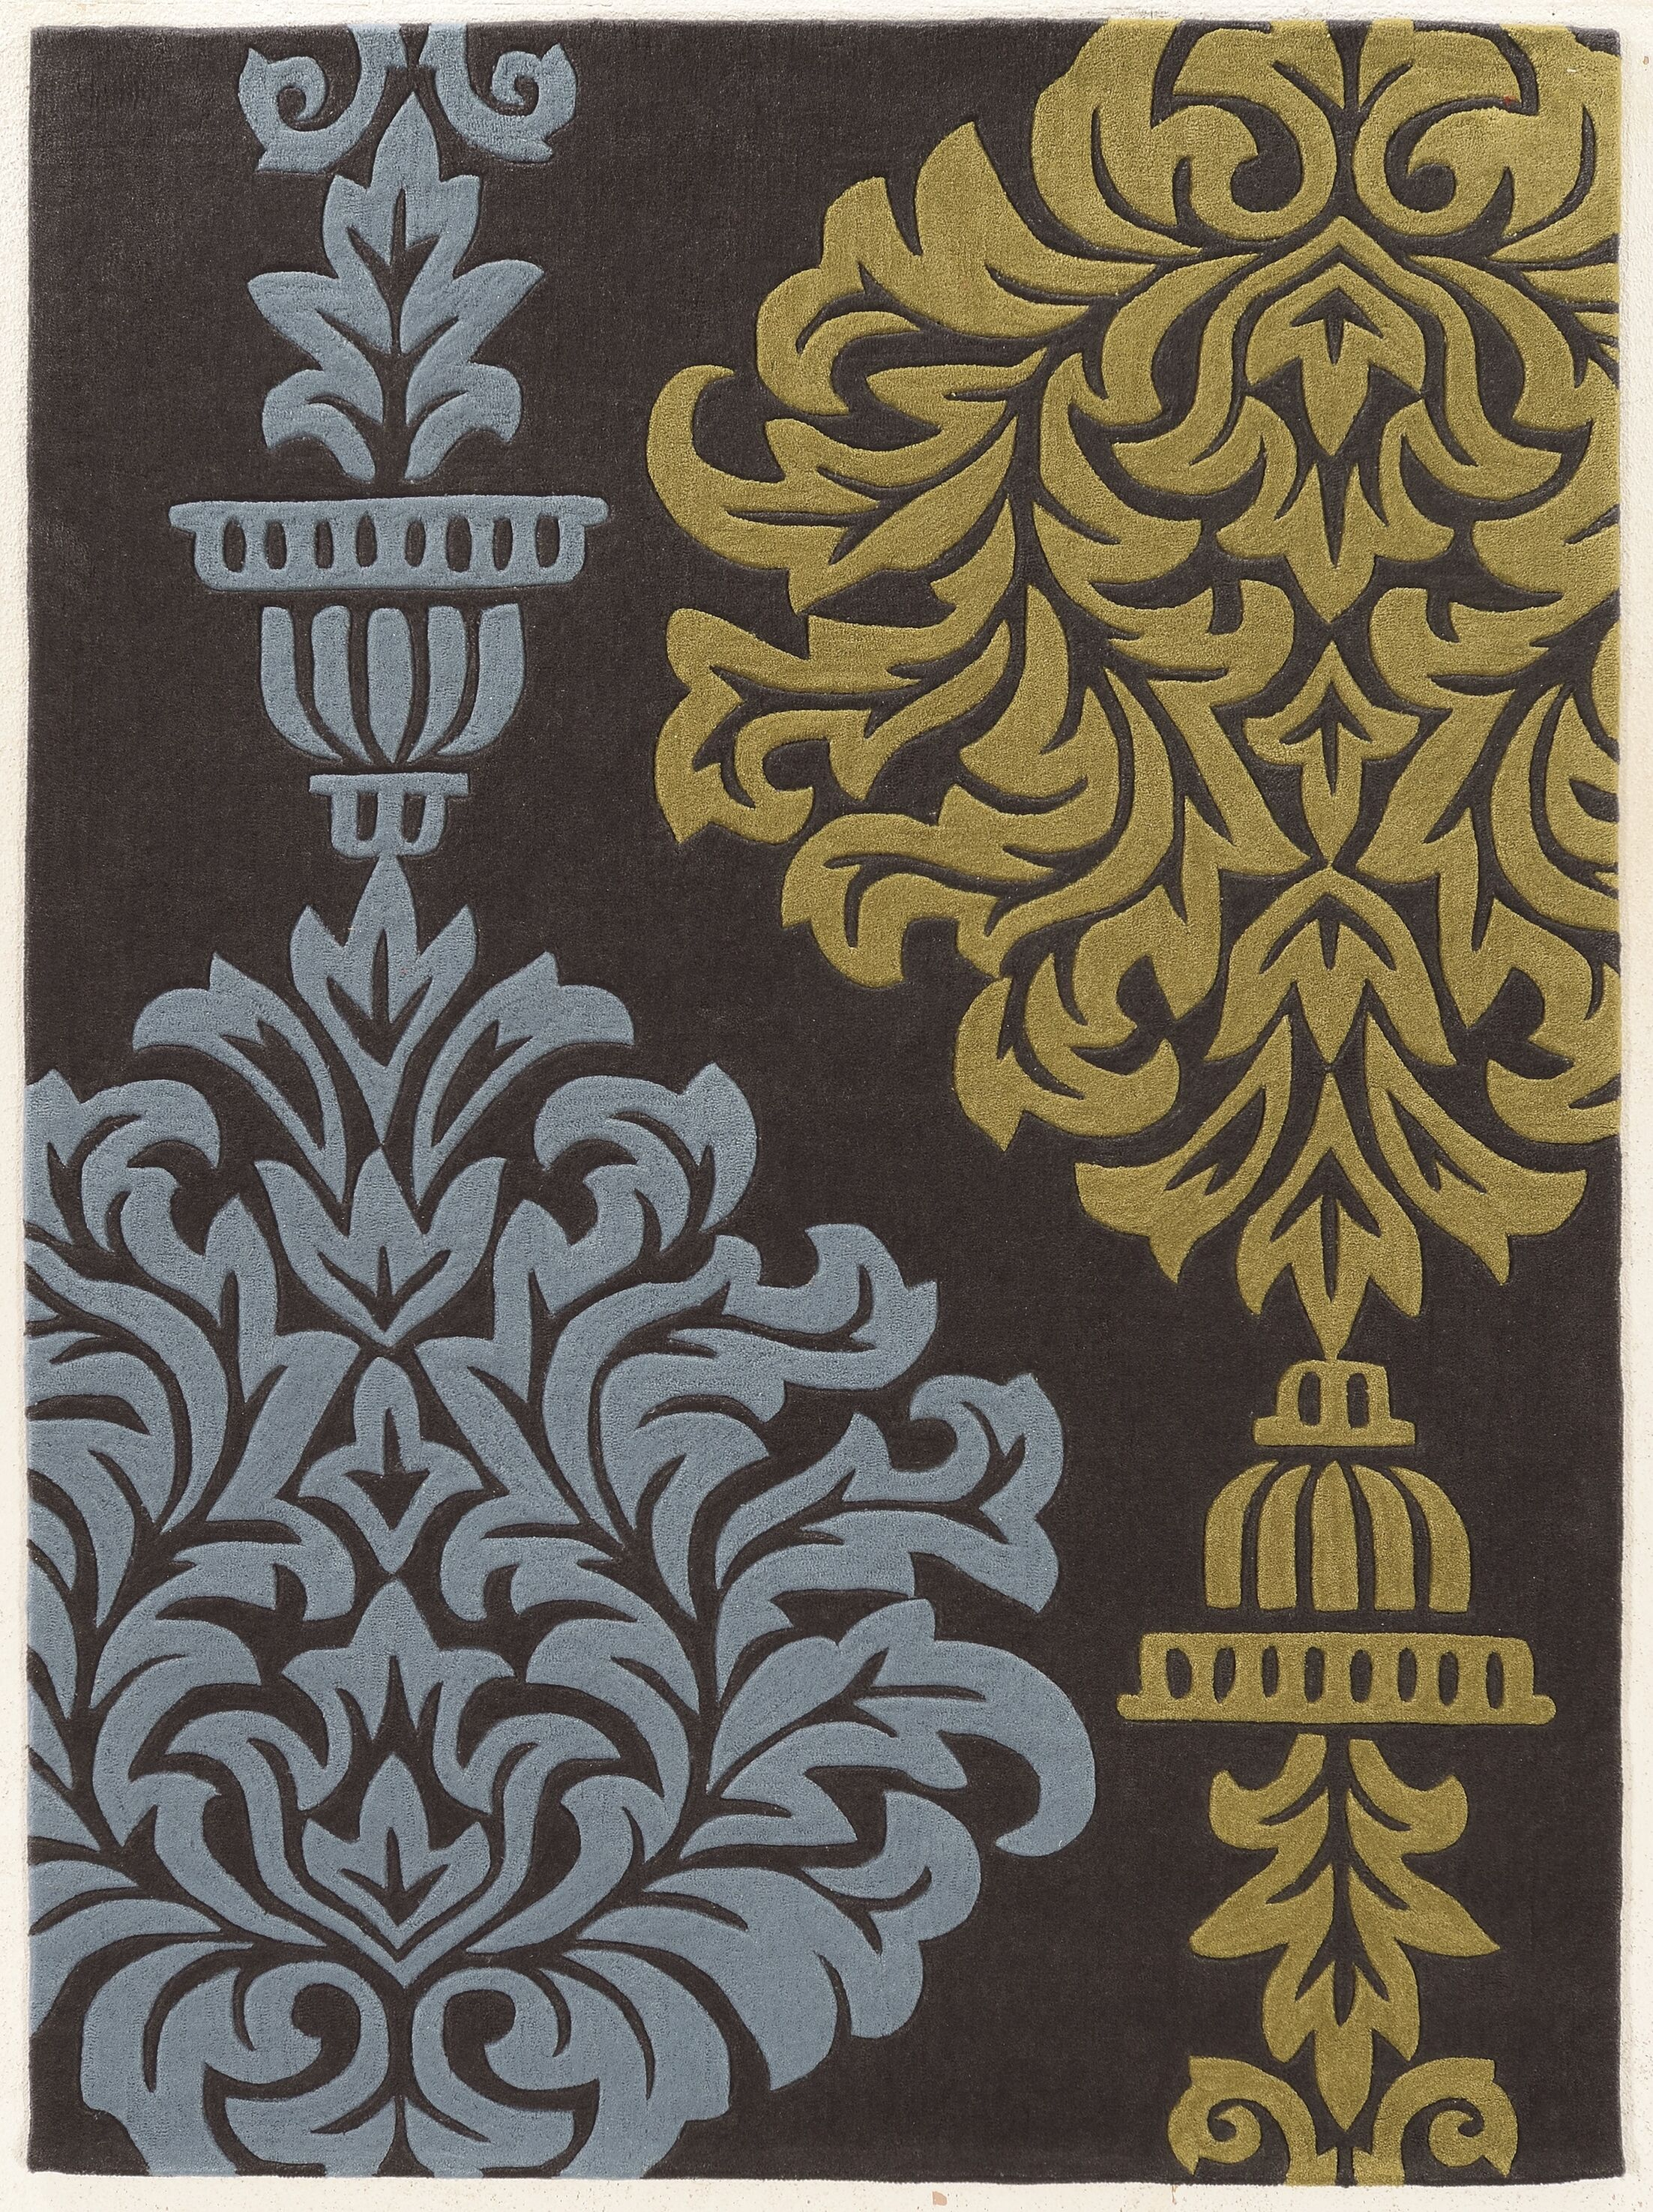 Coggins Hand-Tufted Gray Area Rug Rug Size: Rectangle 8' x 10'